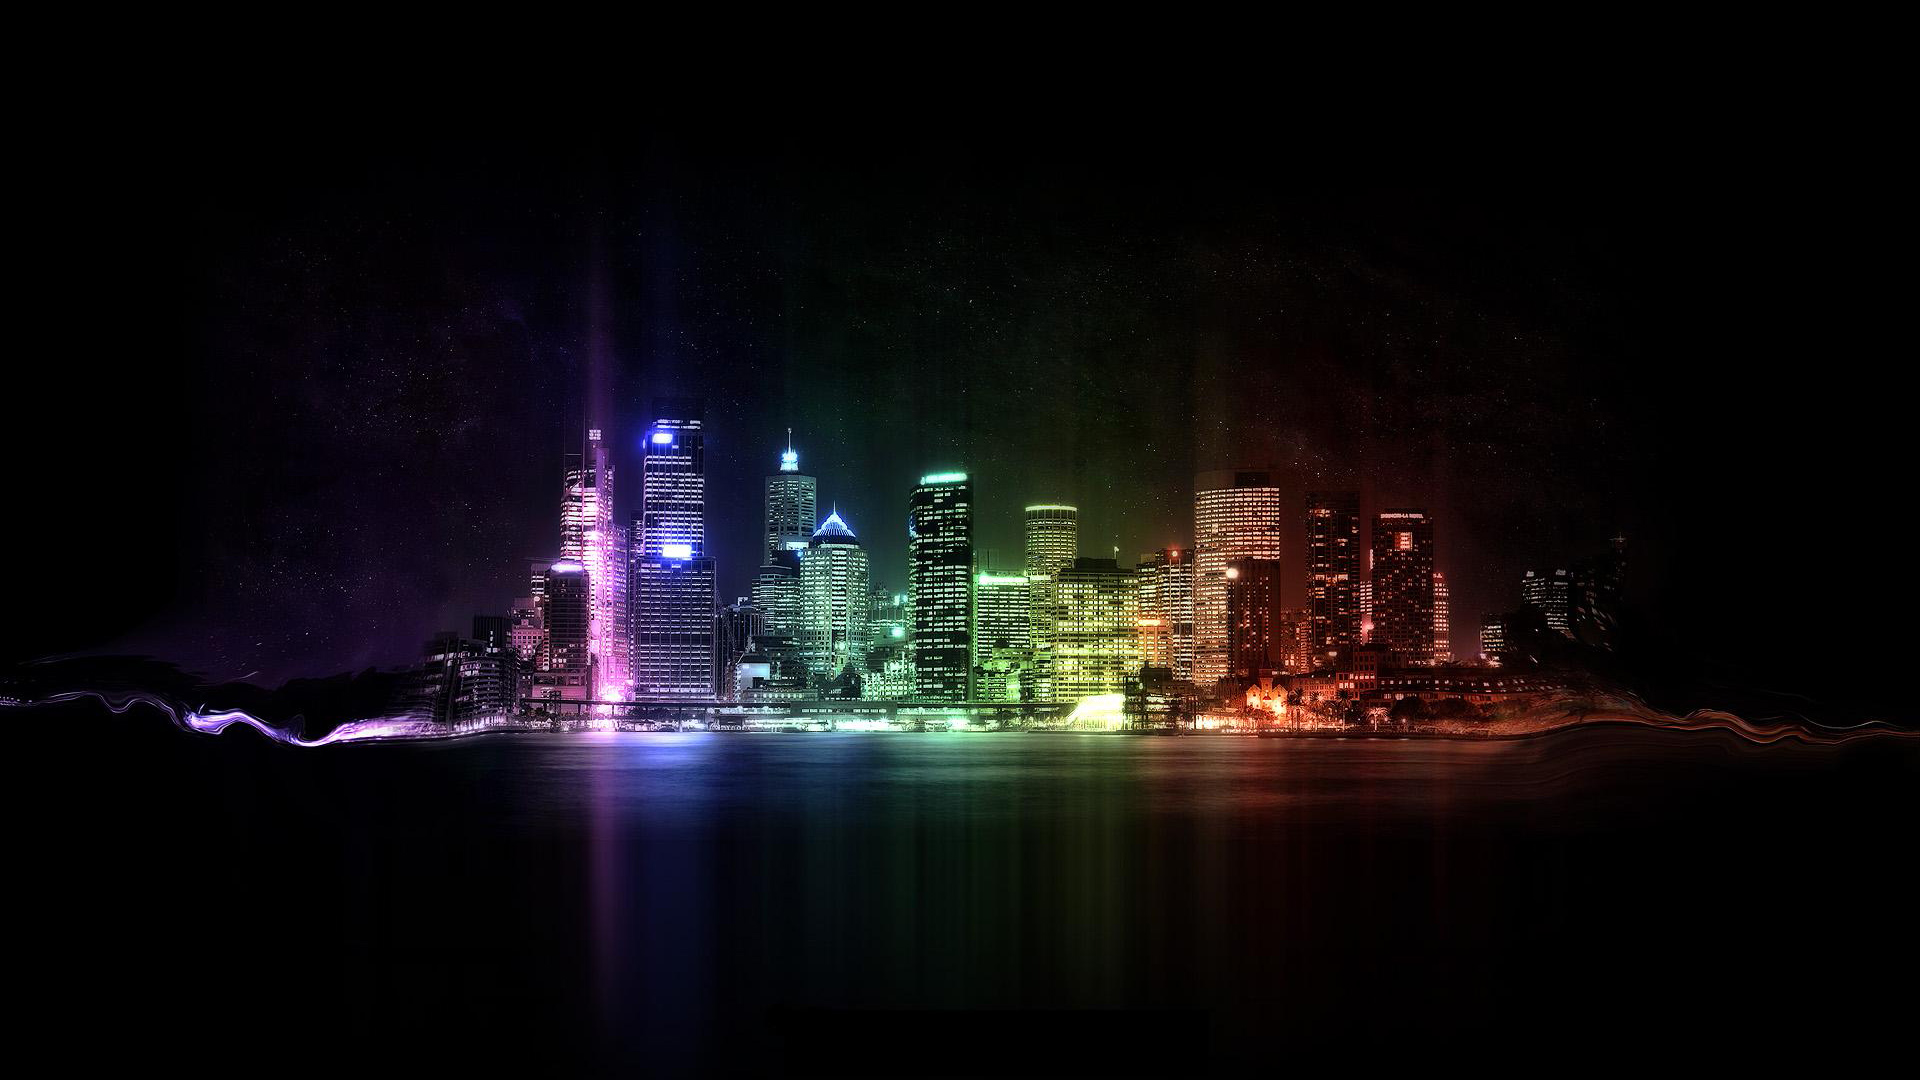 lights city wallpapers walls resolutions 1920x1080 1920x1080